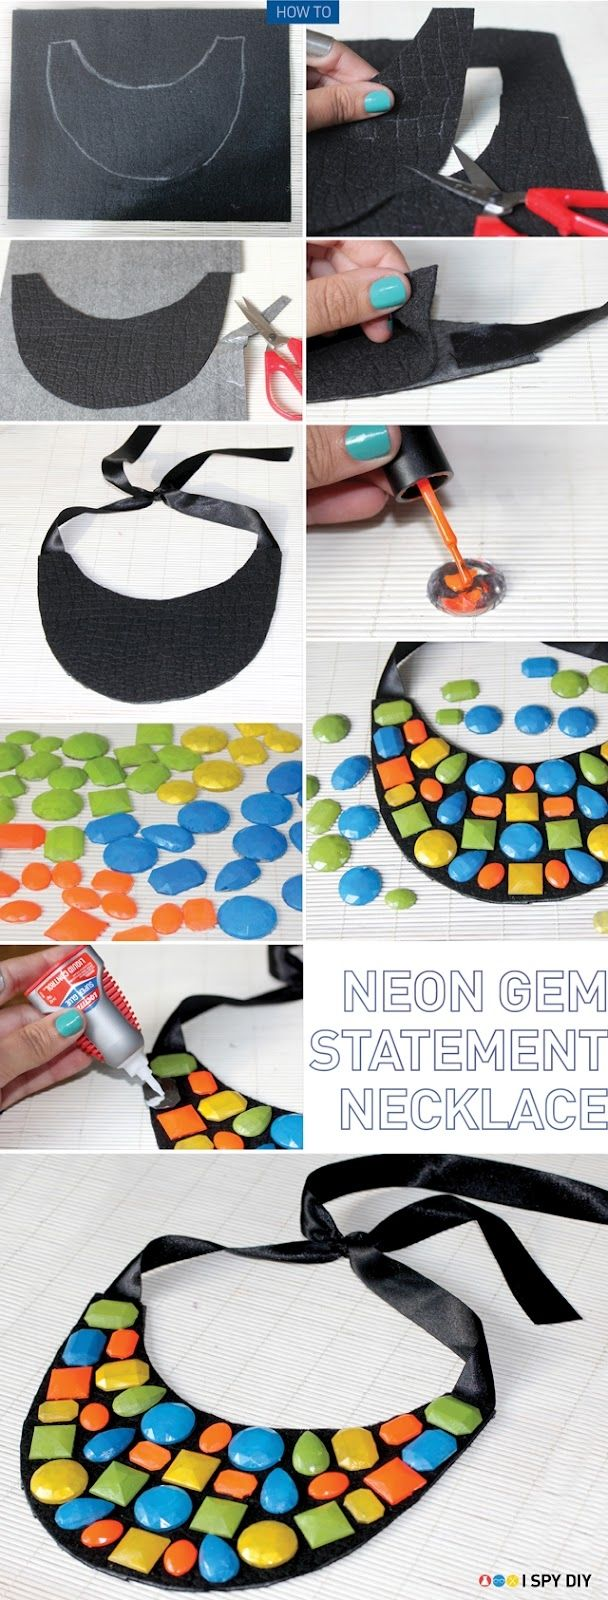 DIY Neon Gem Statement Necklace